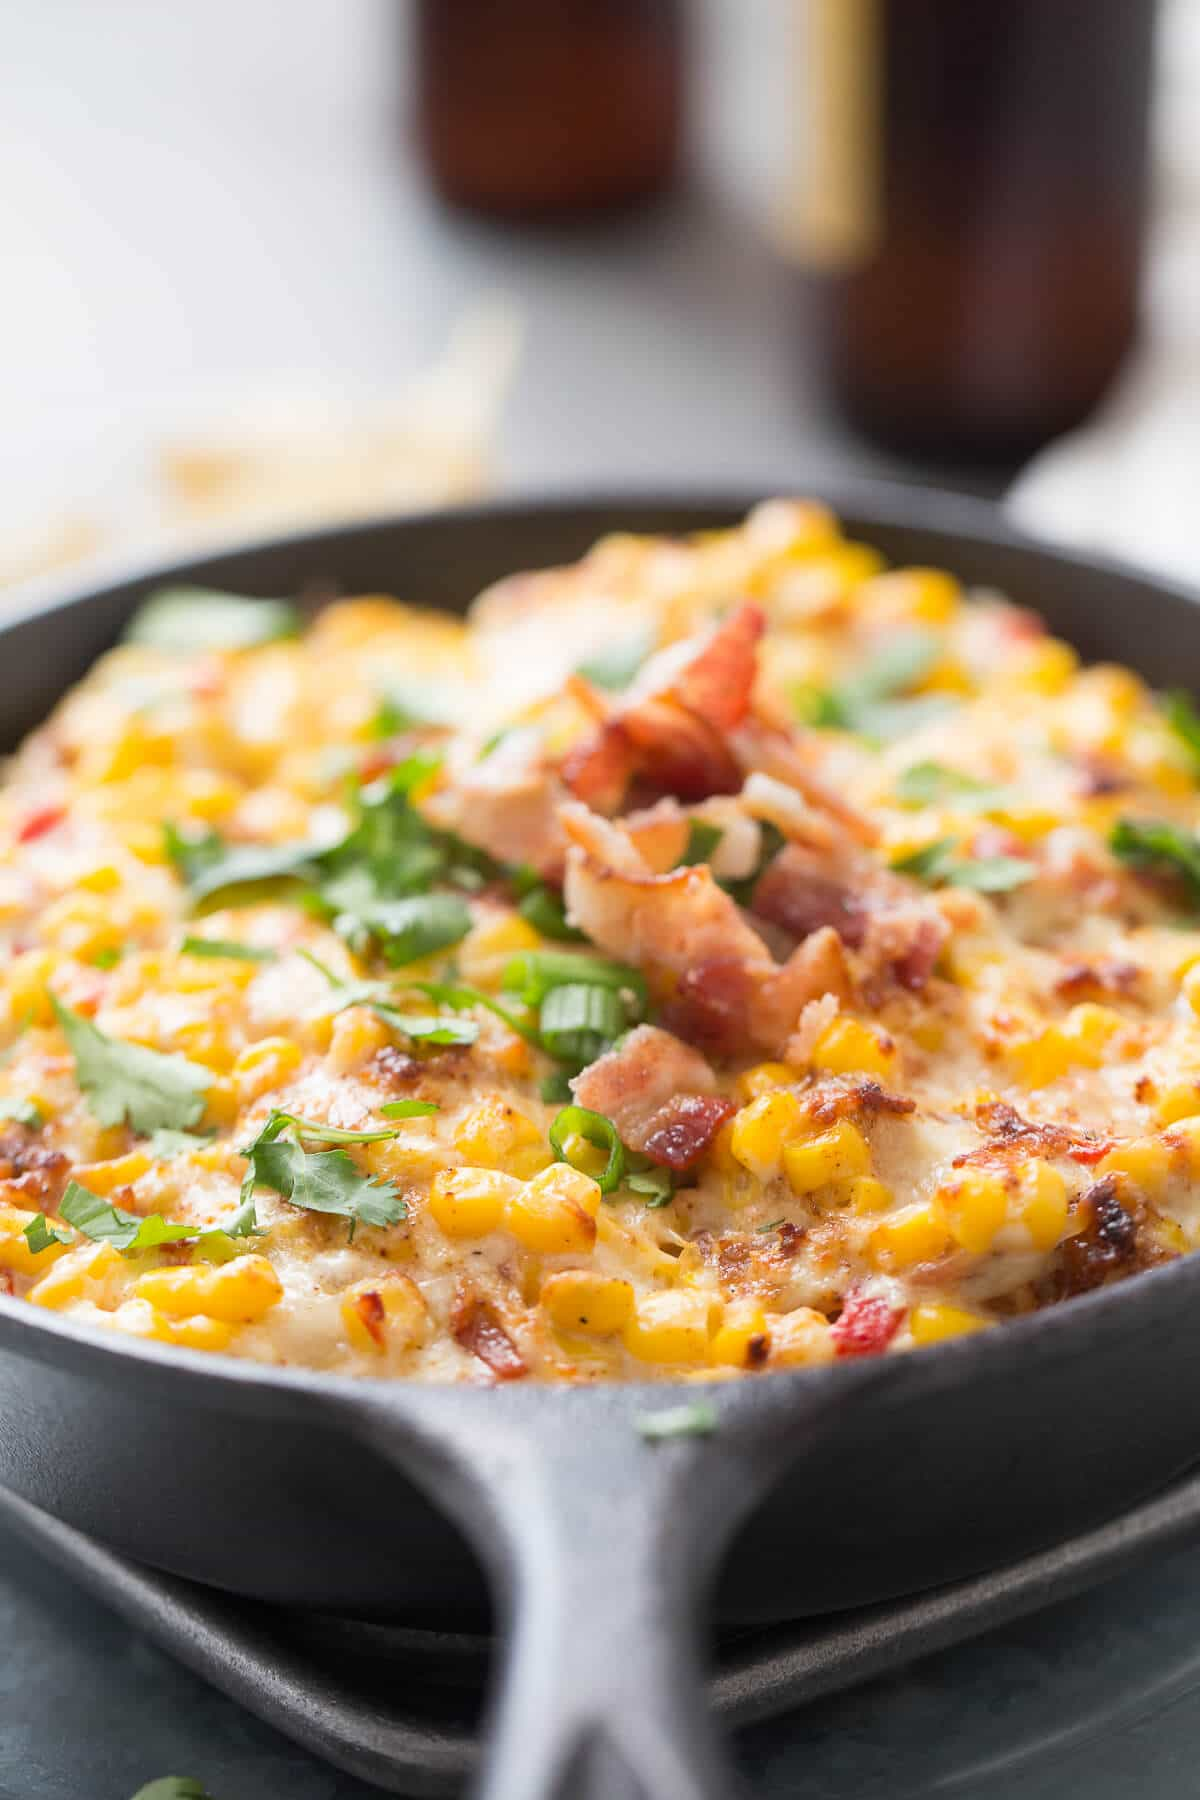 This hot corn dip is going to make your next party! It is absolutely irresistible!